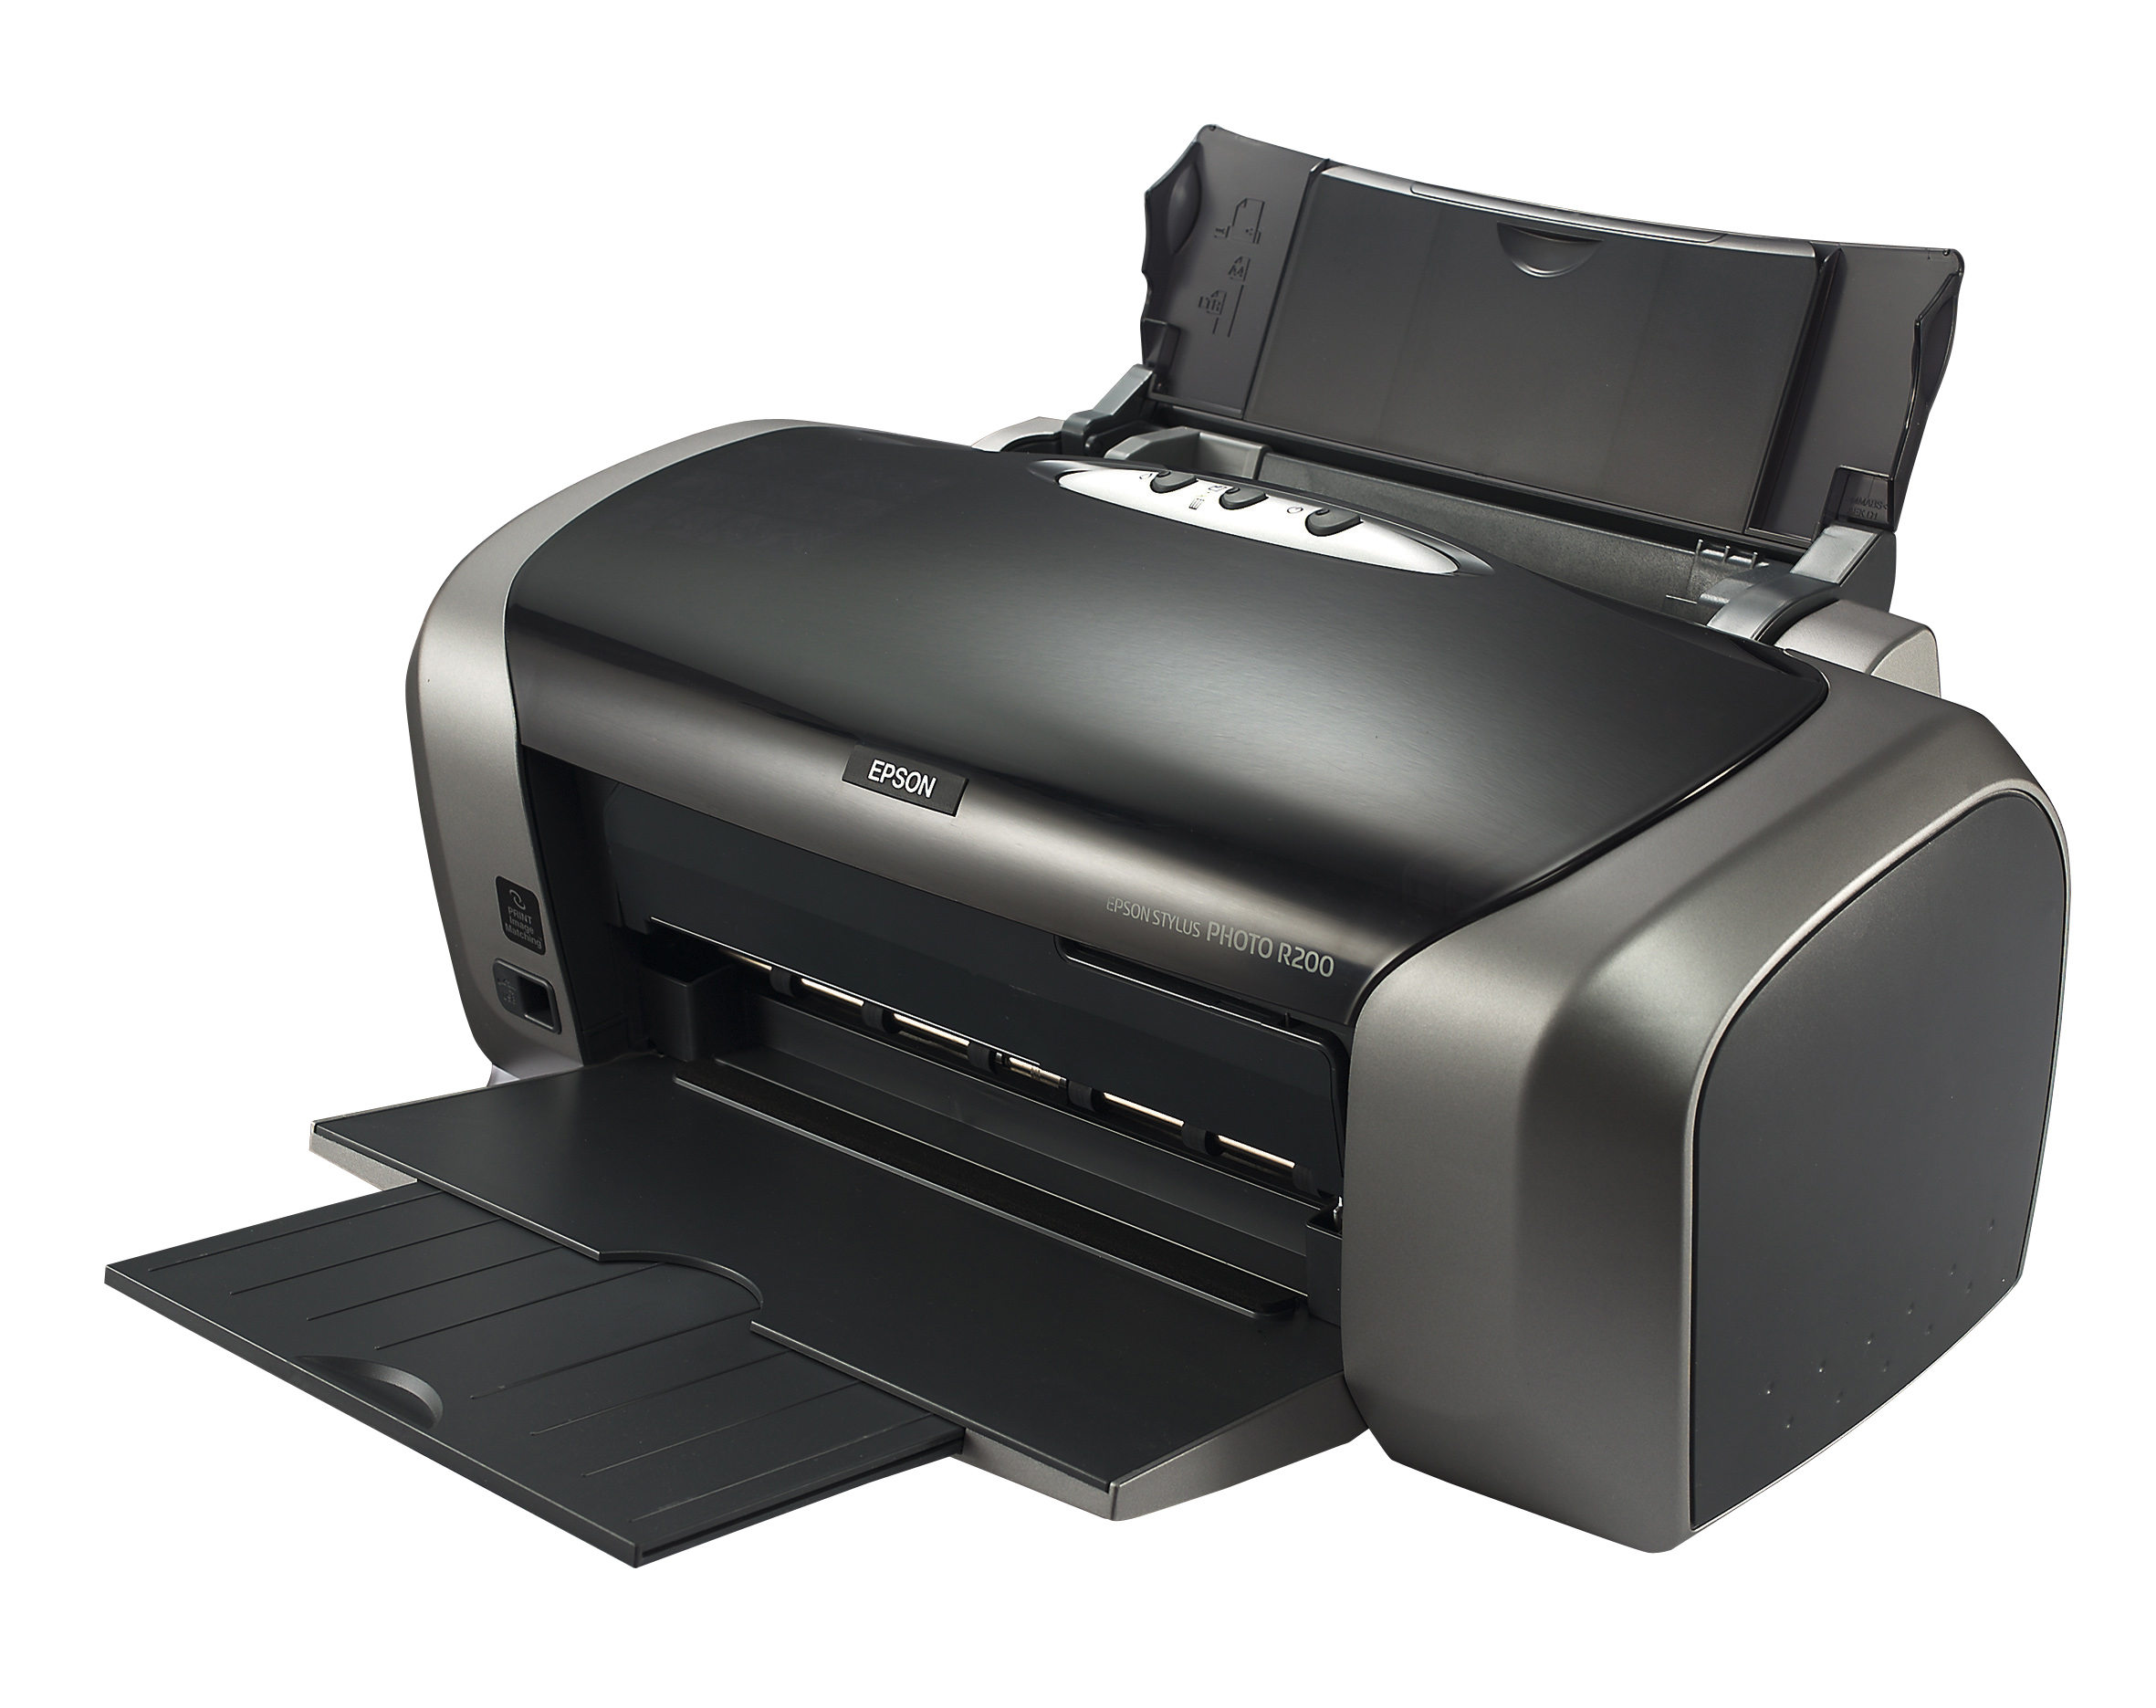 Epson stylus photo r220 driver downloads | download drivers.